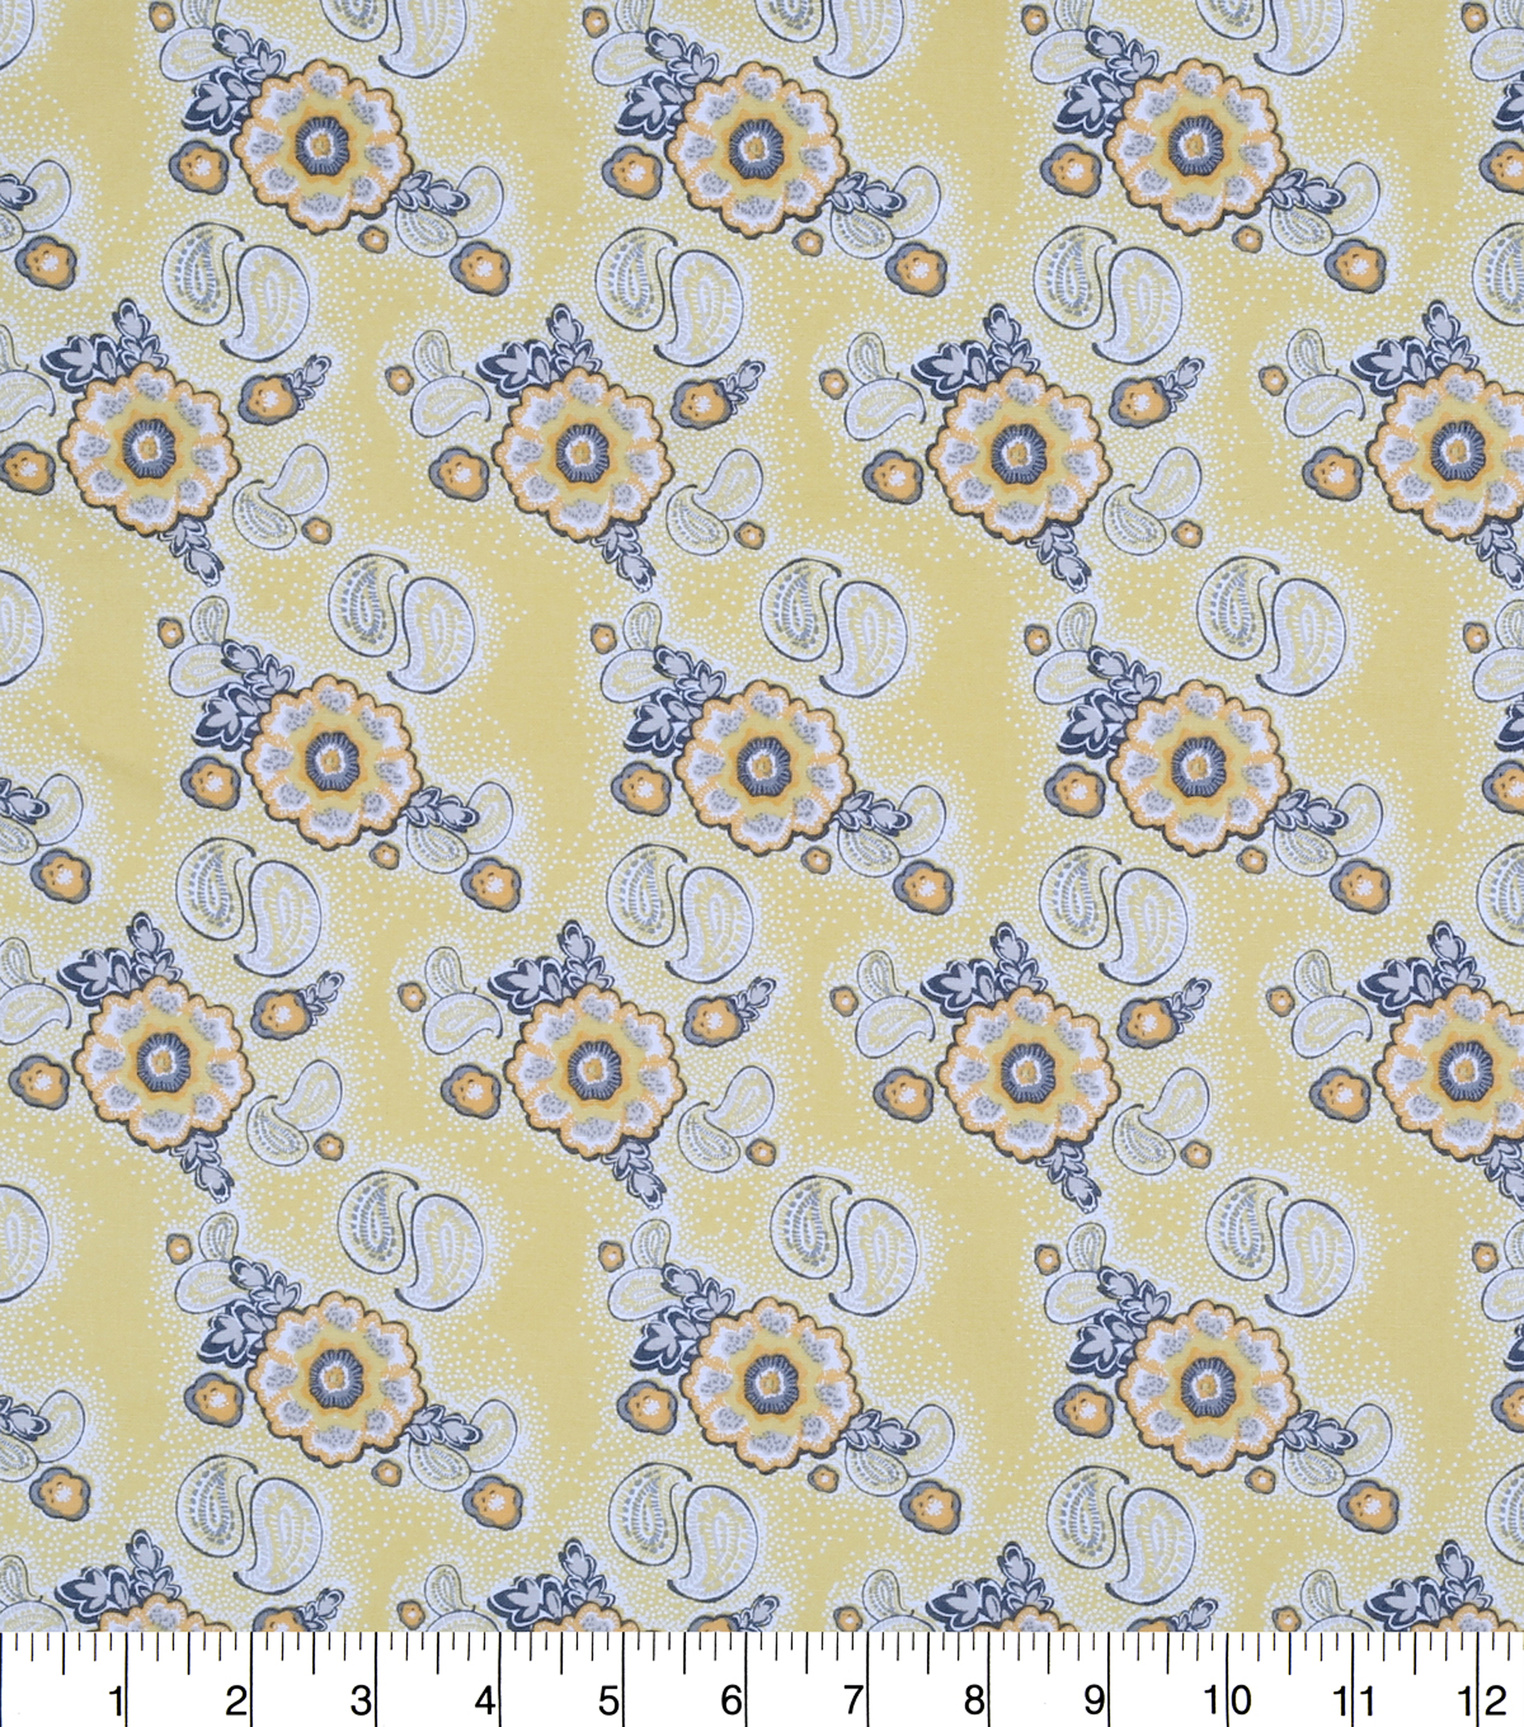 Keepsake Calico Cotton Fabric -Floral Paisley Yellow